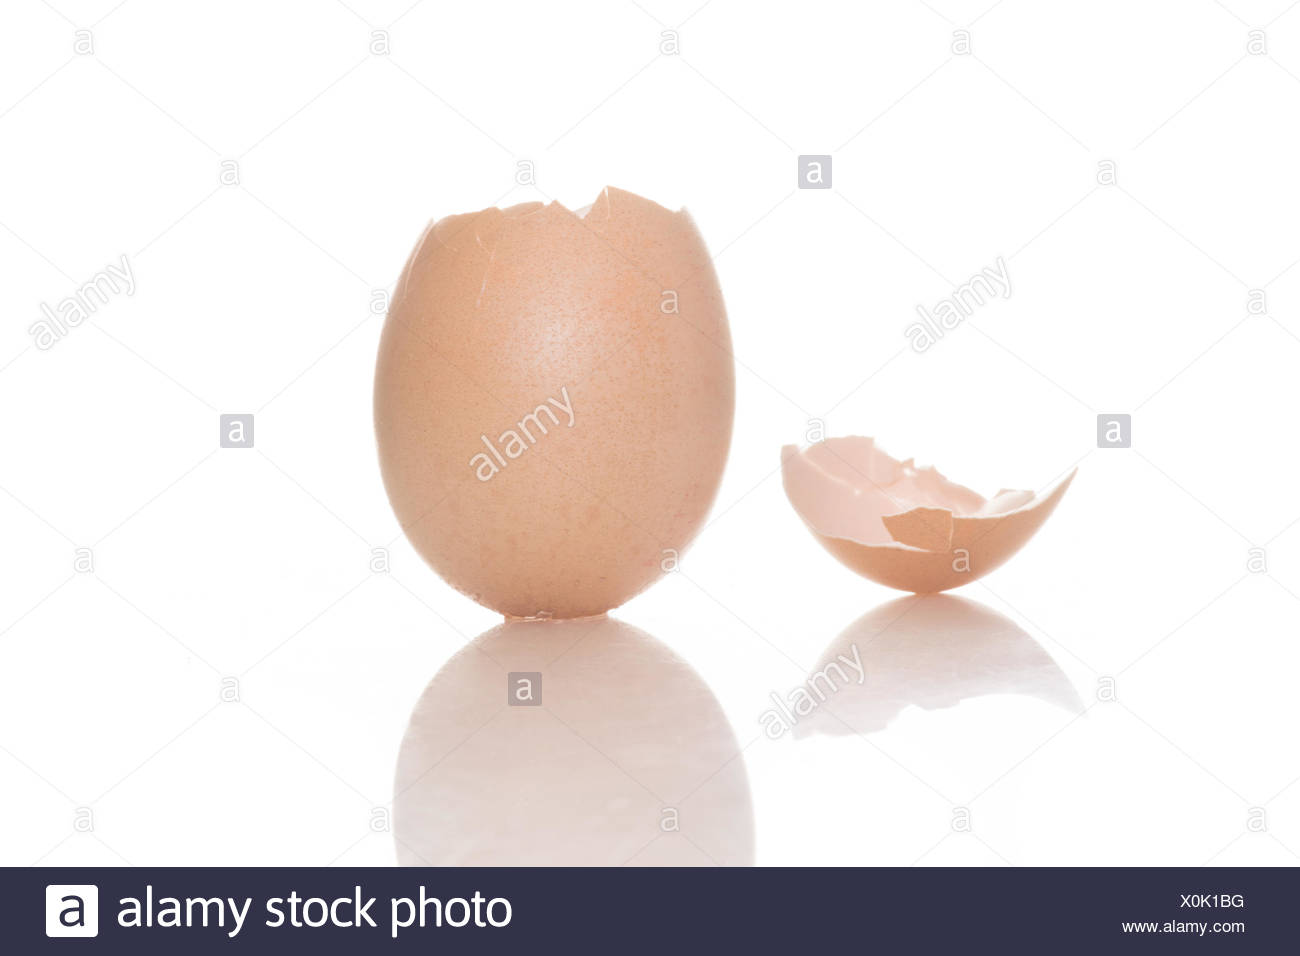 Empty broken egg shell on a white background - Stock Image